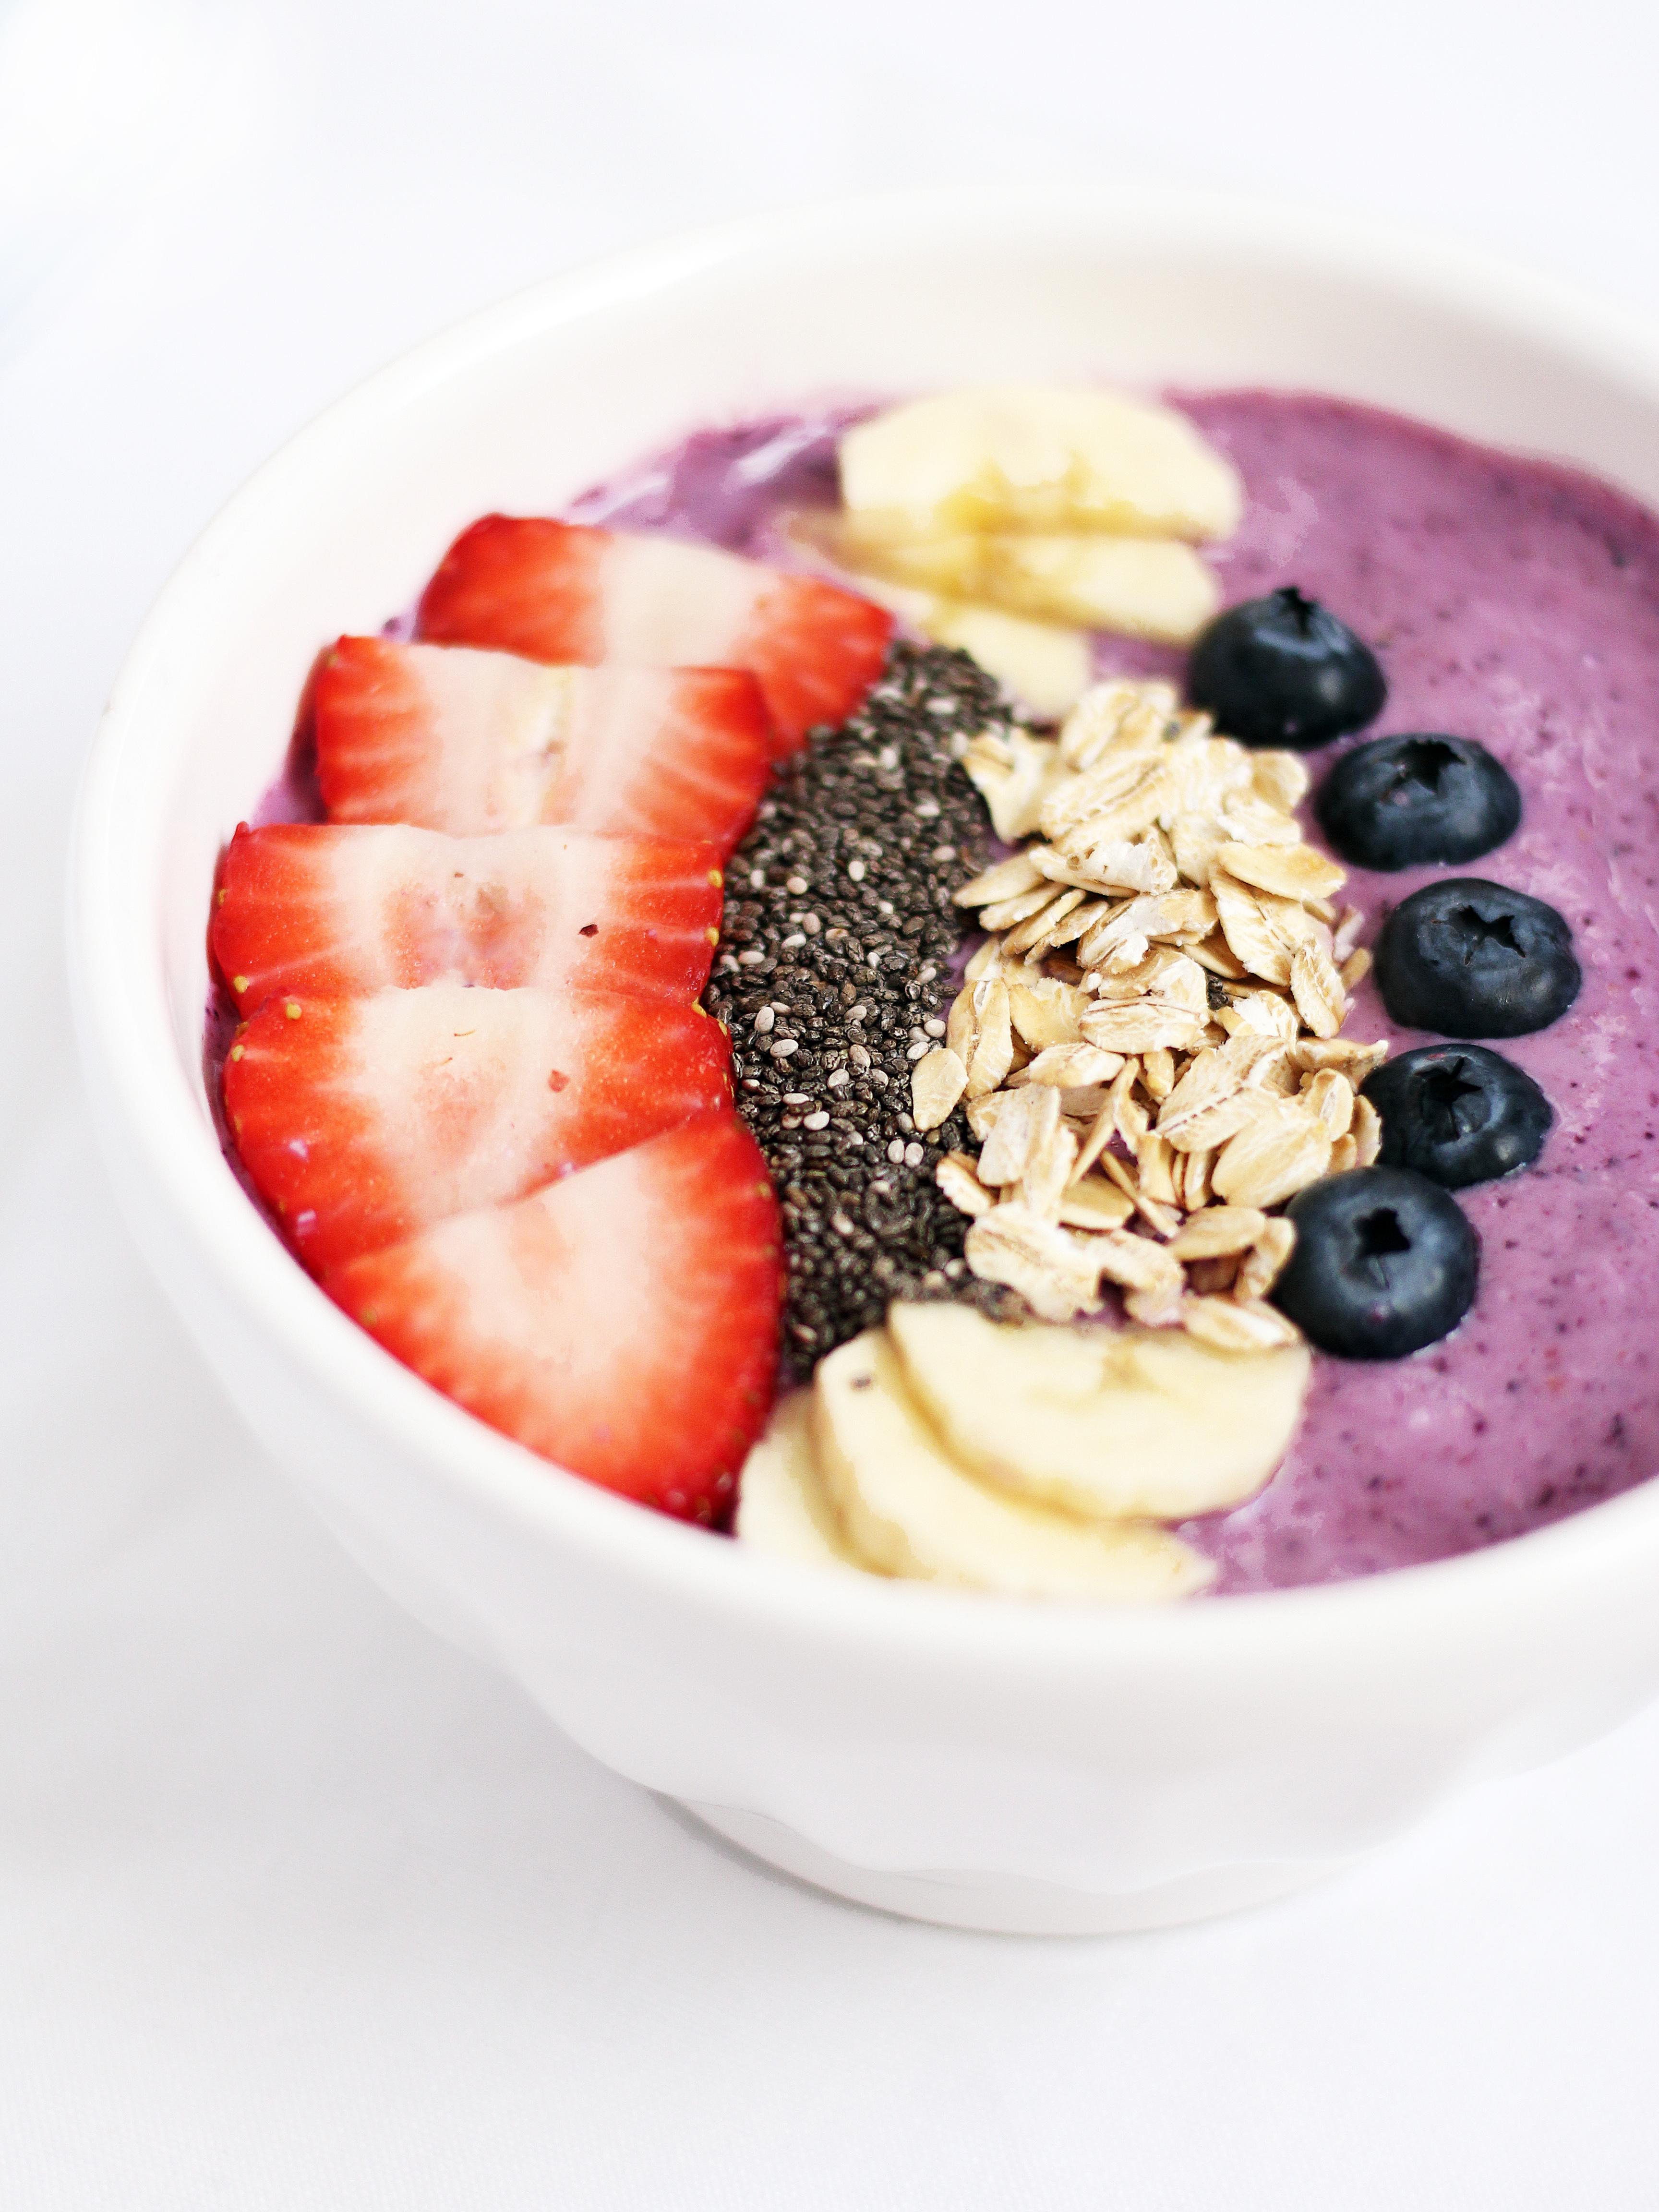 How to make smoothie bowls without blender